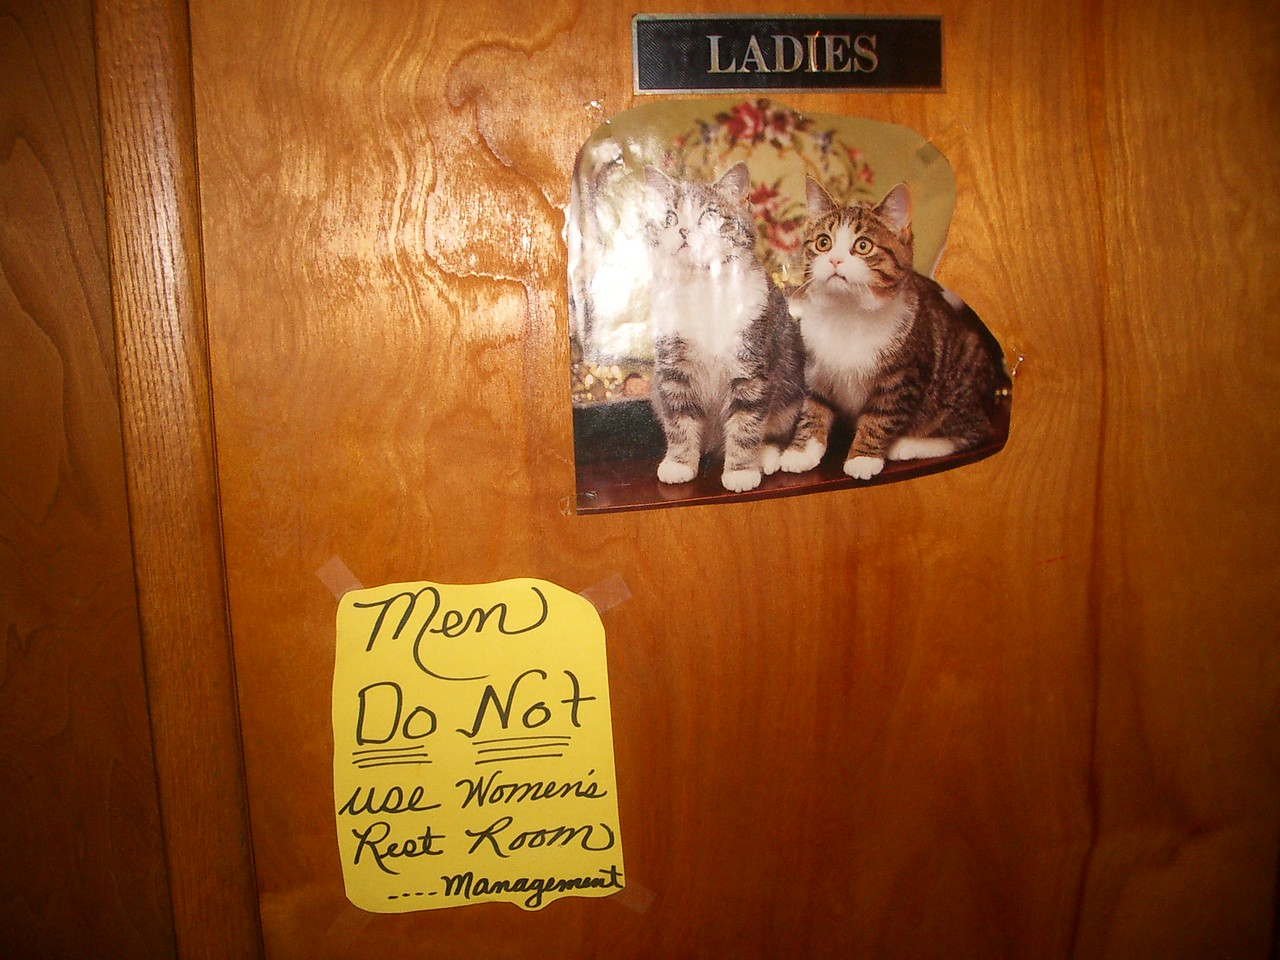 Evidently, there is a frequent problem with men using the women's washroom in this West Virginia town.